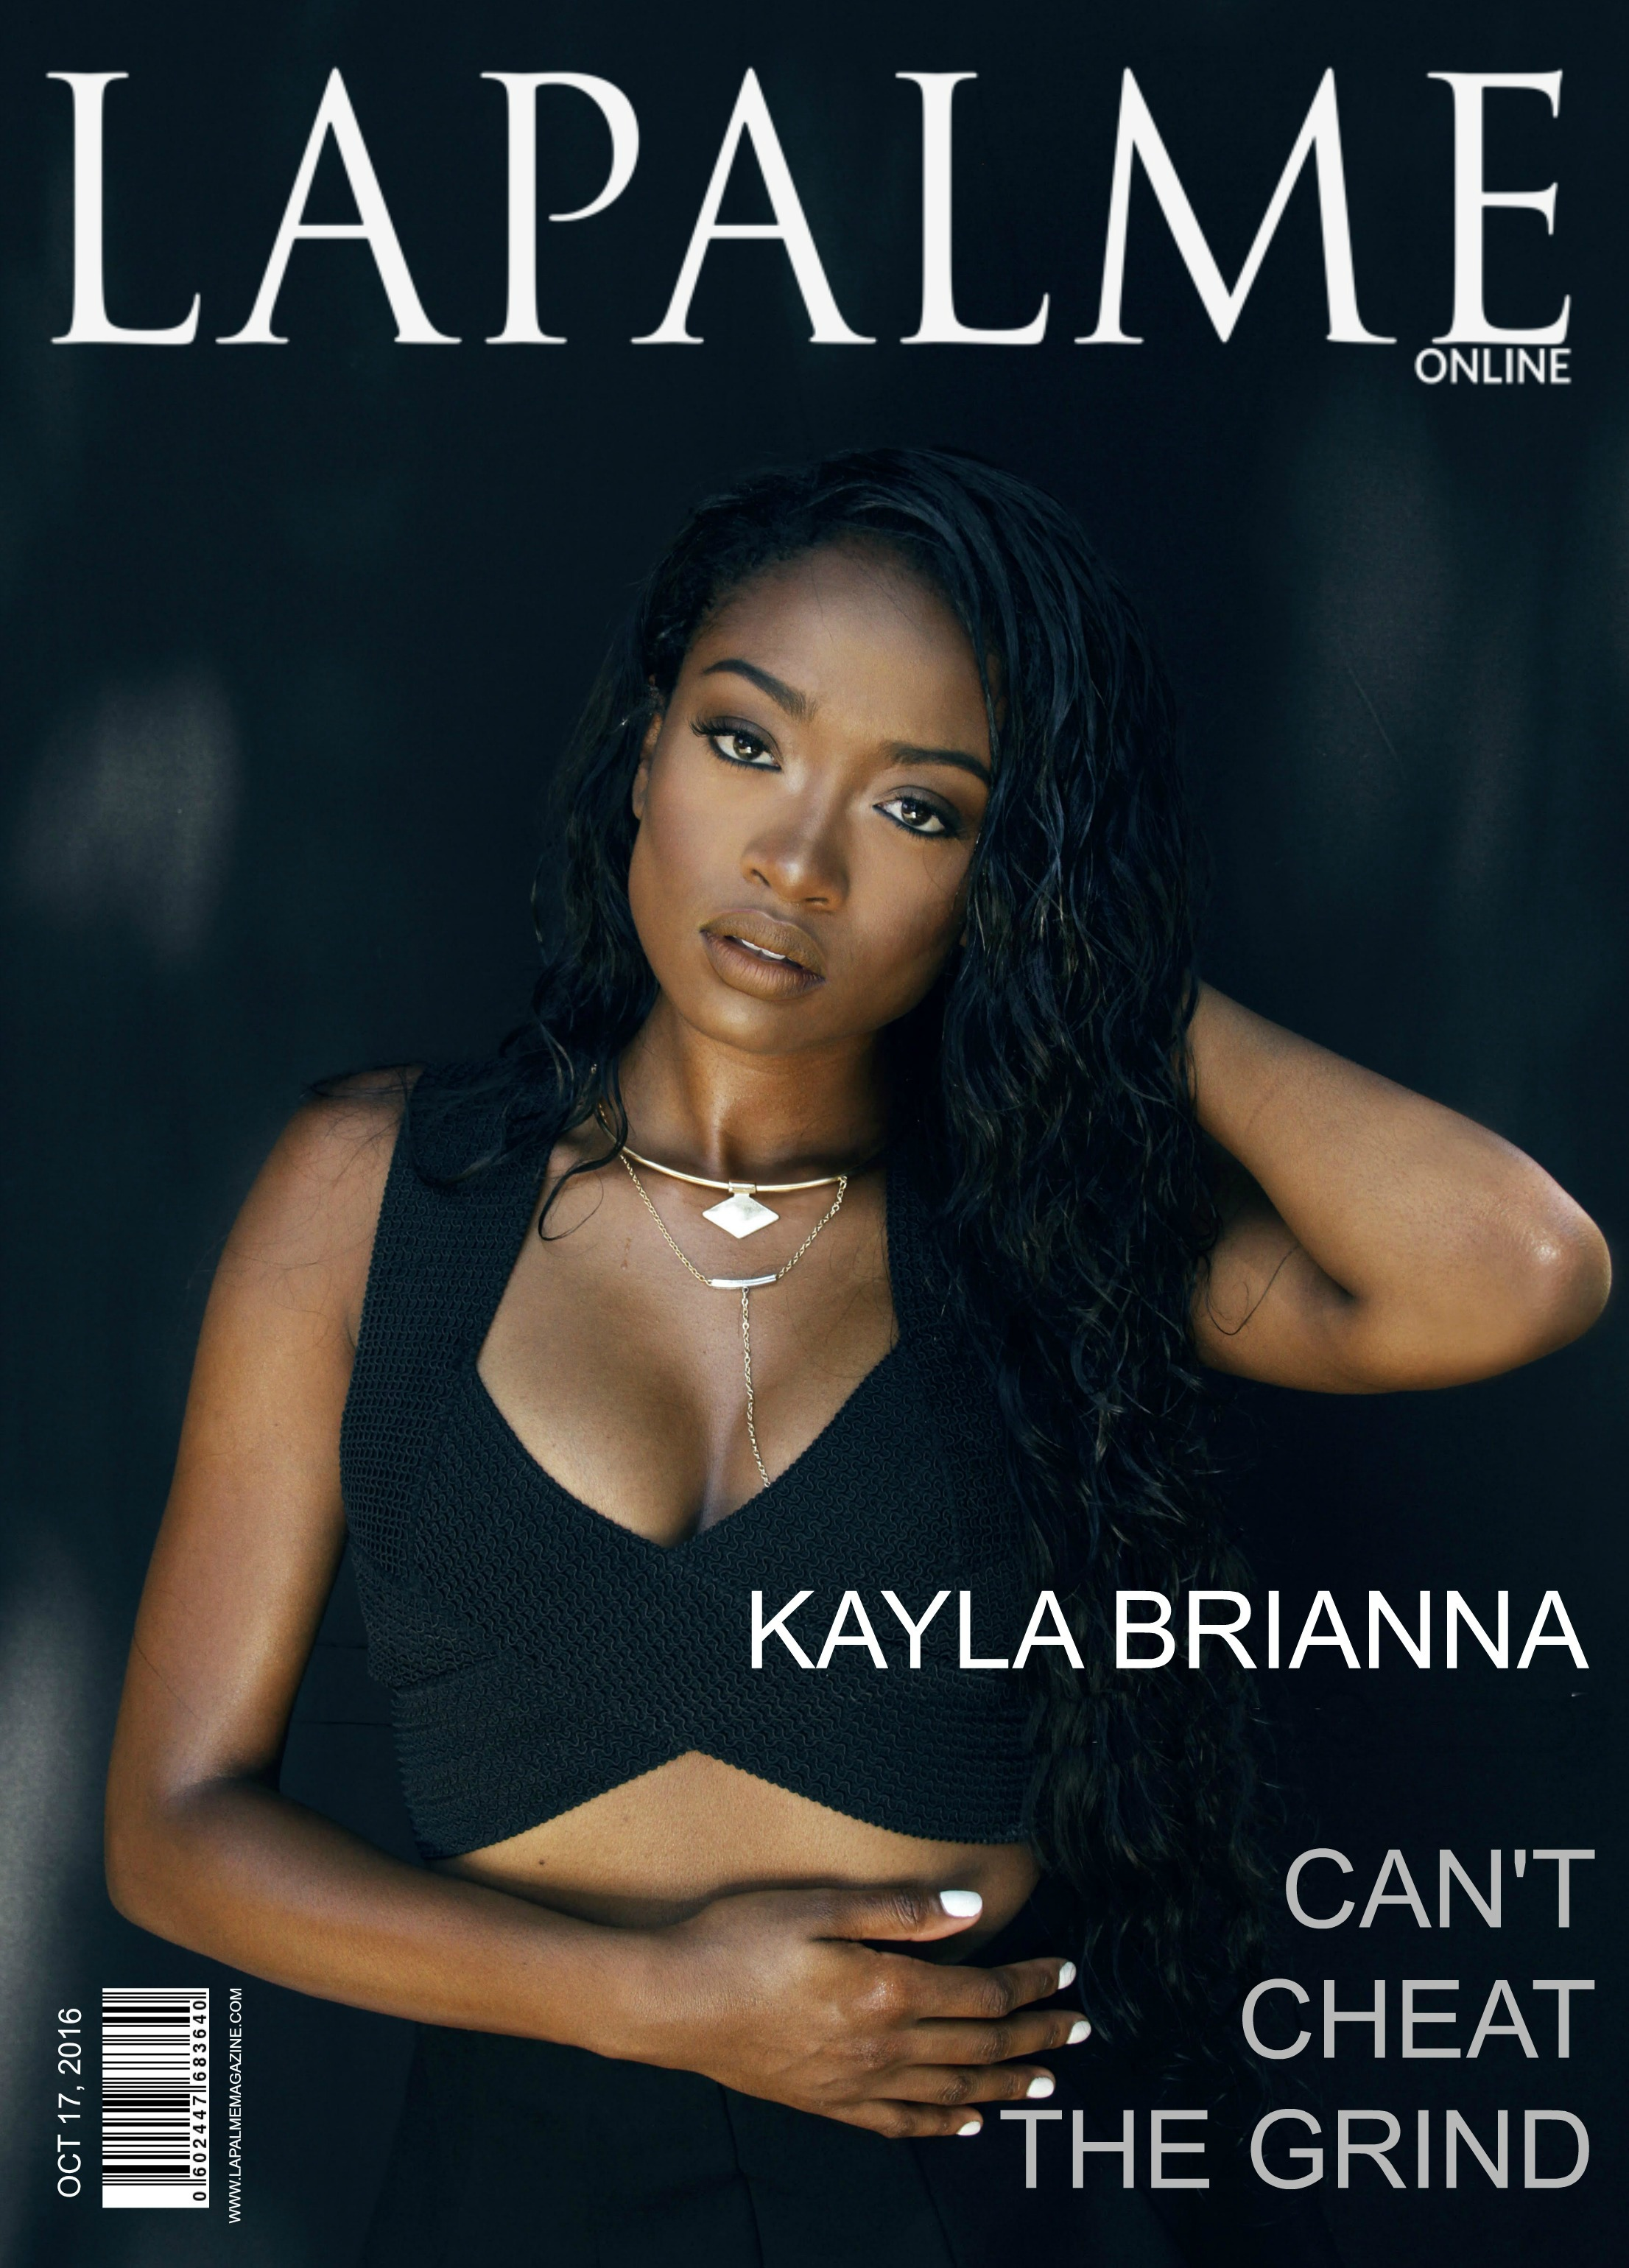 10 Things You Need to Know About Kayla Brianna